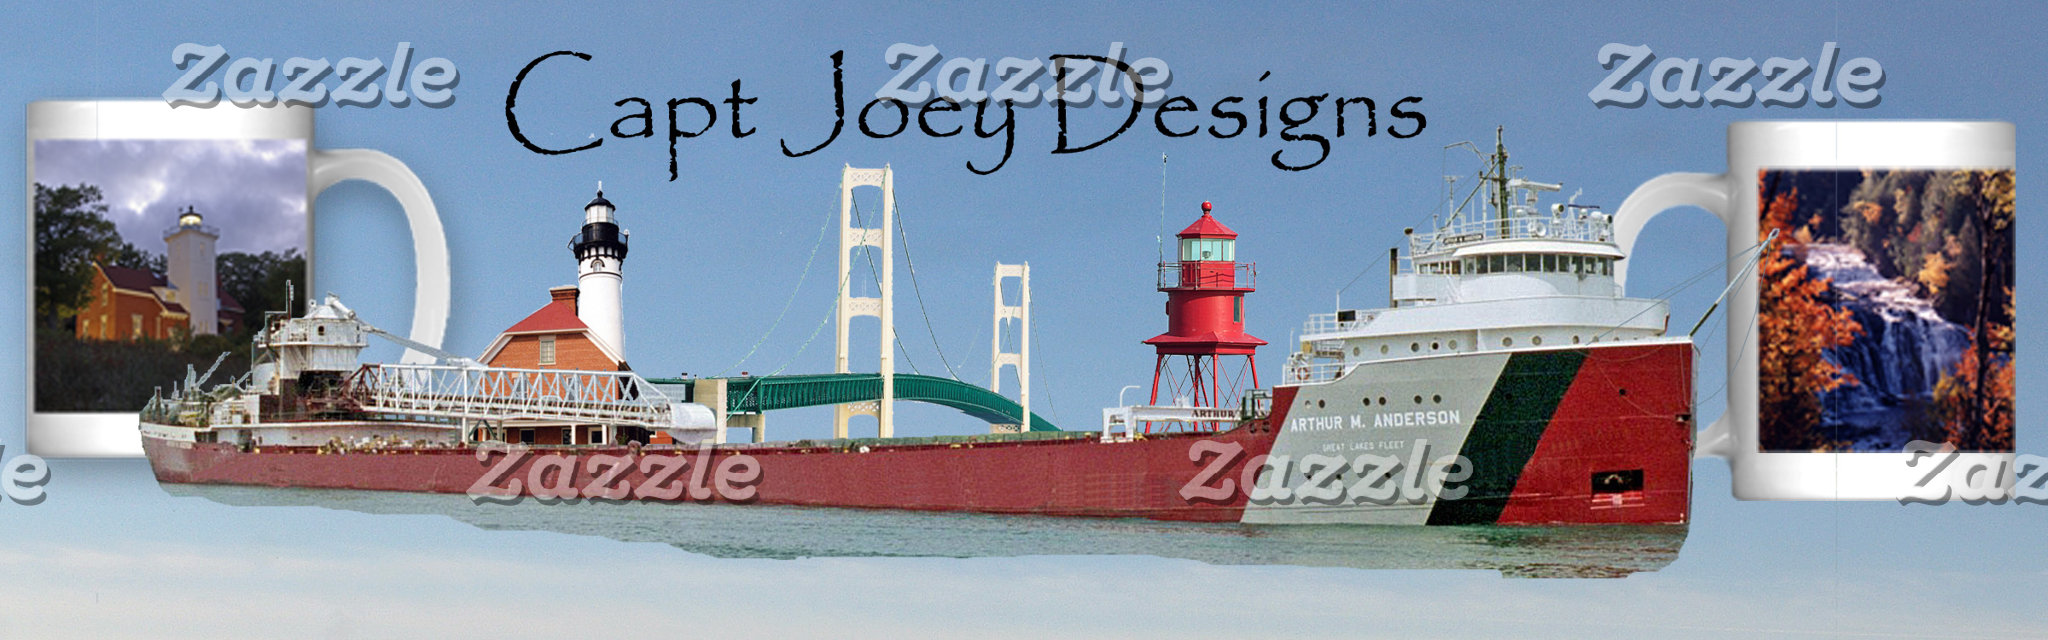 CaptJoeyDesigns